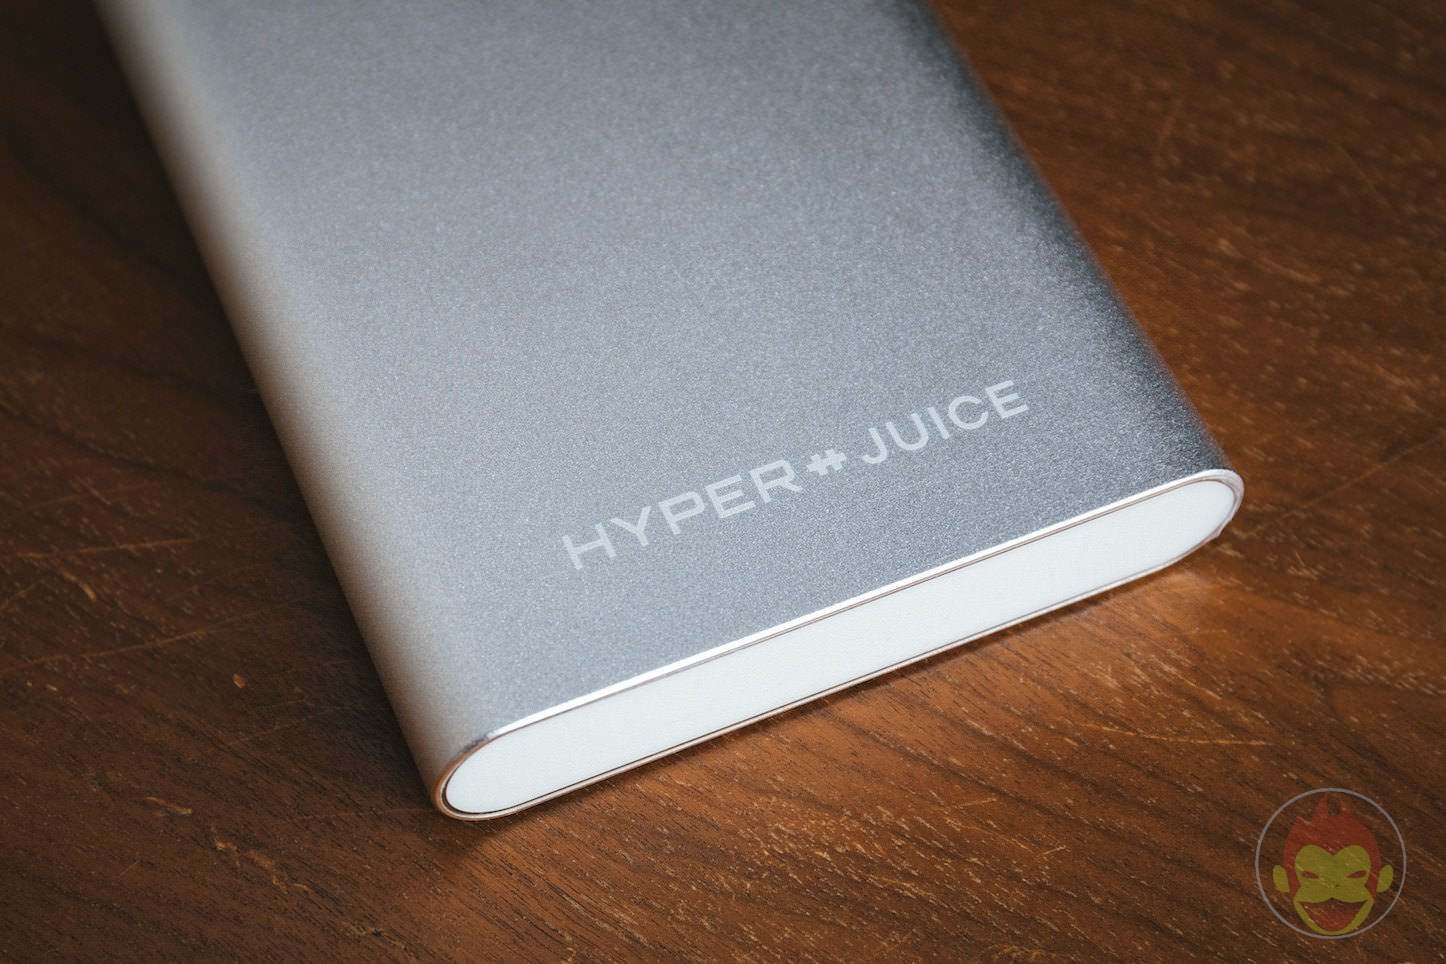 HyperJuice AC Mobile Battery for Mac